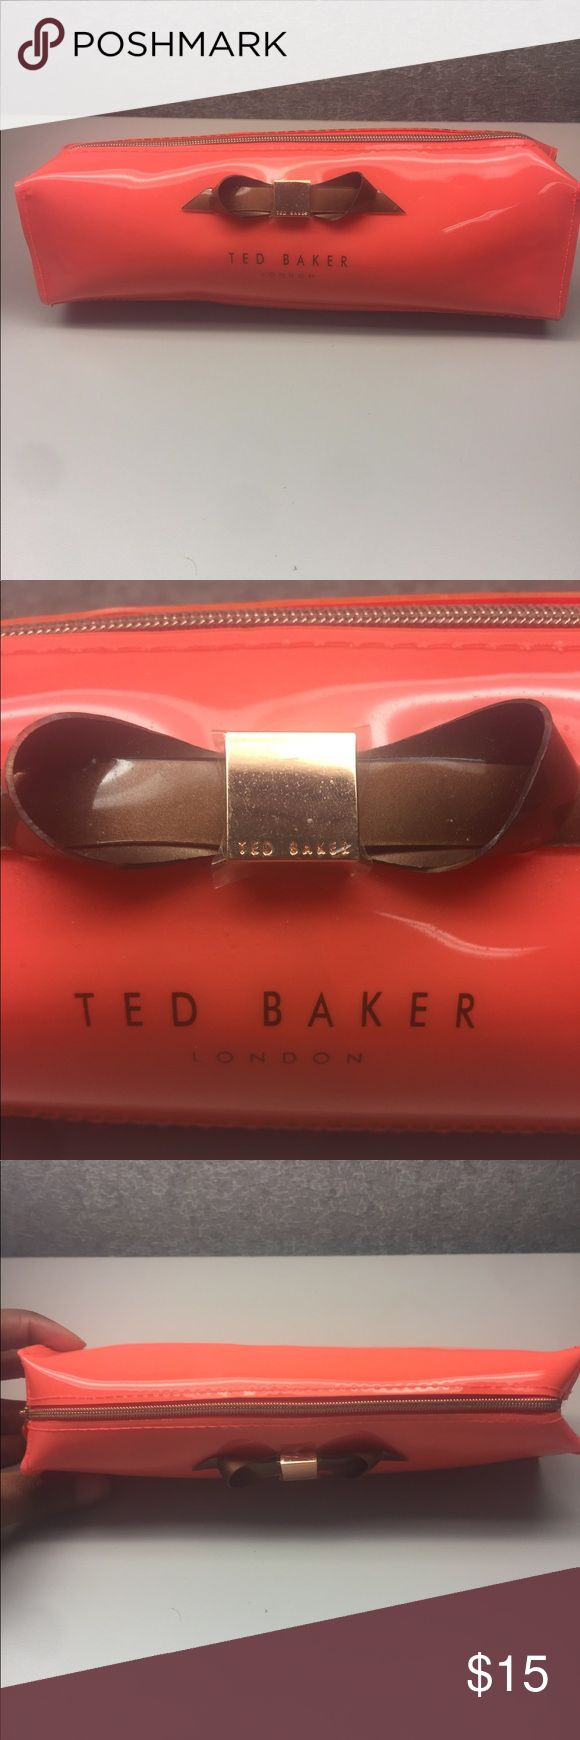 Ted Baker 'Slim Bow' Pencil Case Ted Baker 'Slim Bow' Pencil Case Neon color which is brighter in person Top zip closure  100% Polyvinyl Chloride 9 x 2.3 x 2.3 inches  Never been used Ted Baker Bags Cosmetic Bags & Cases